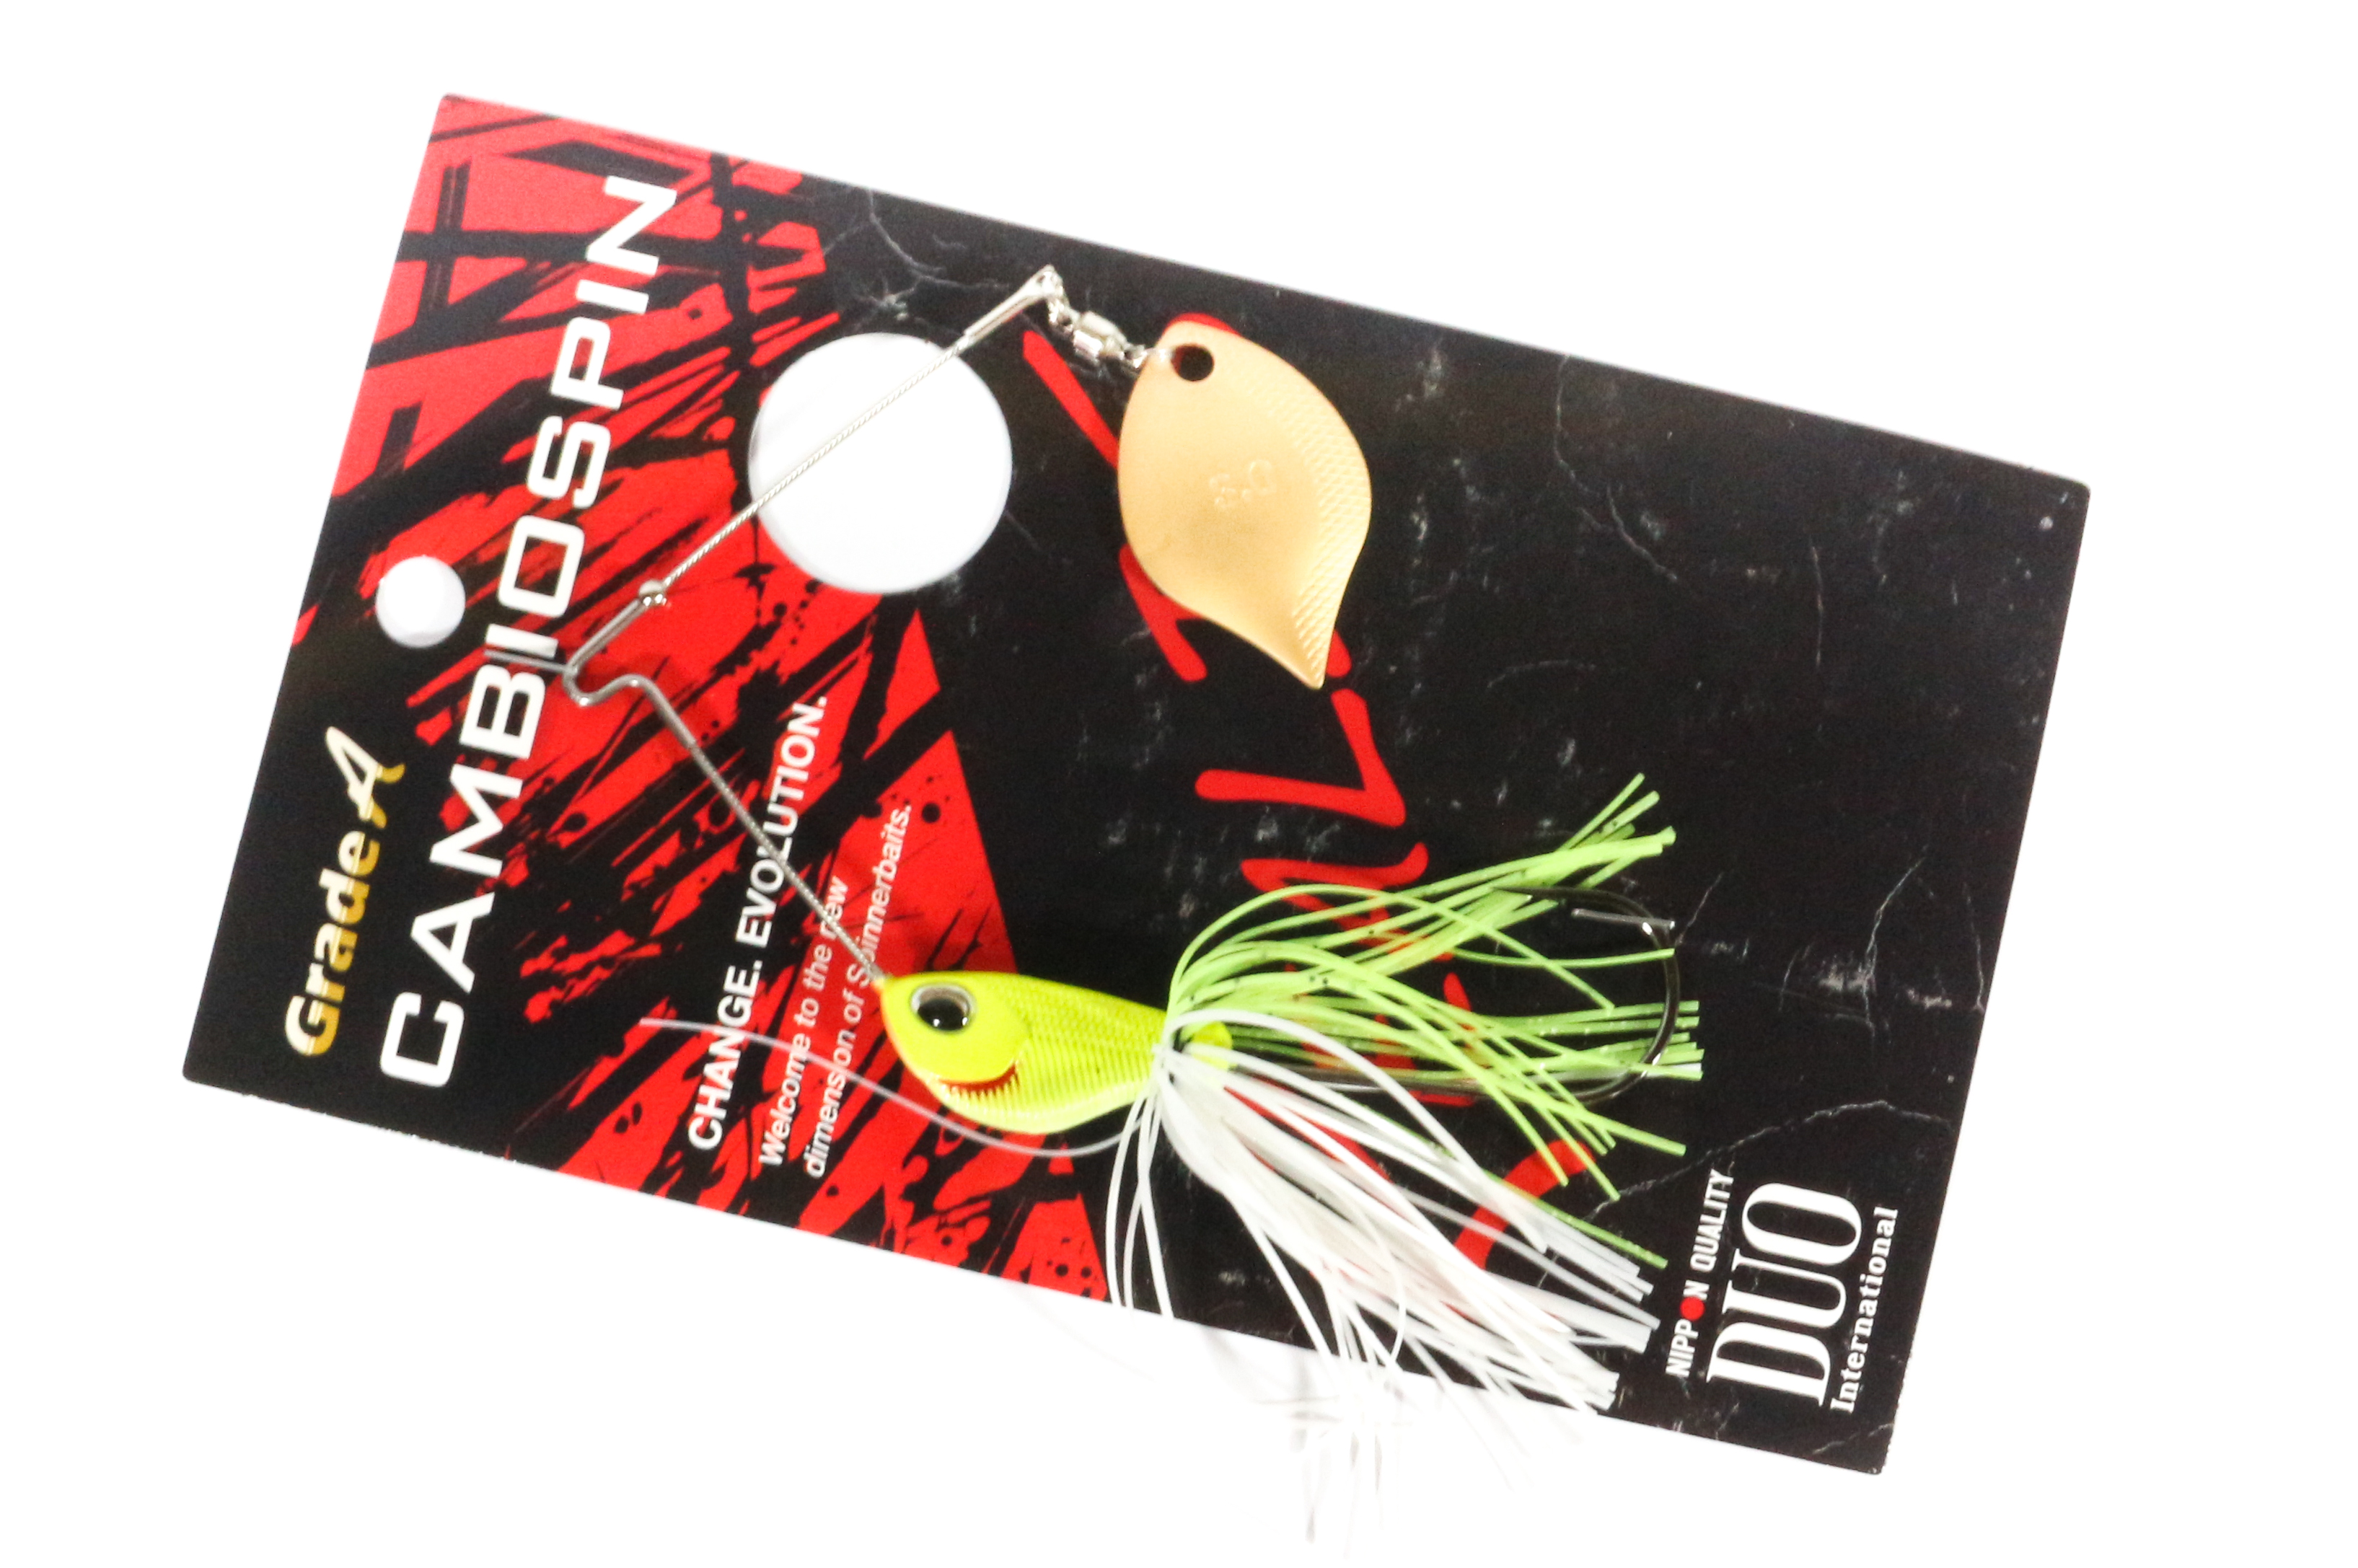 Sale Duo Realis Cambio Spin Spinnerbait Single Blade 3/8 oz J017 (4326)